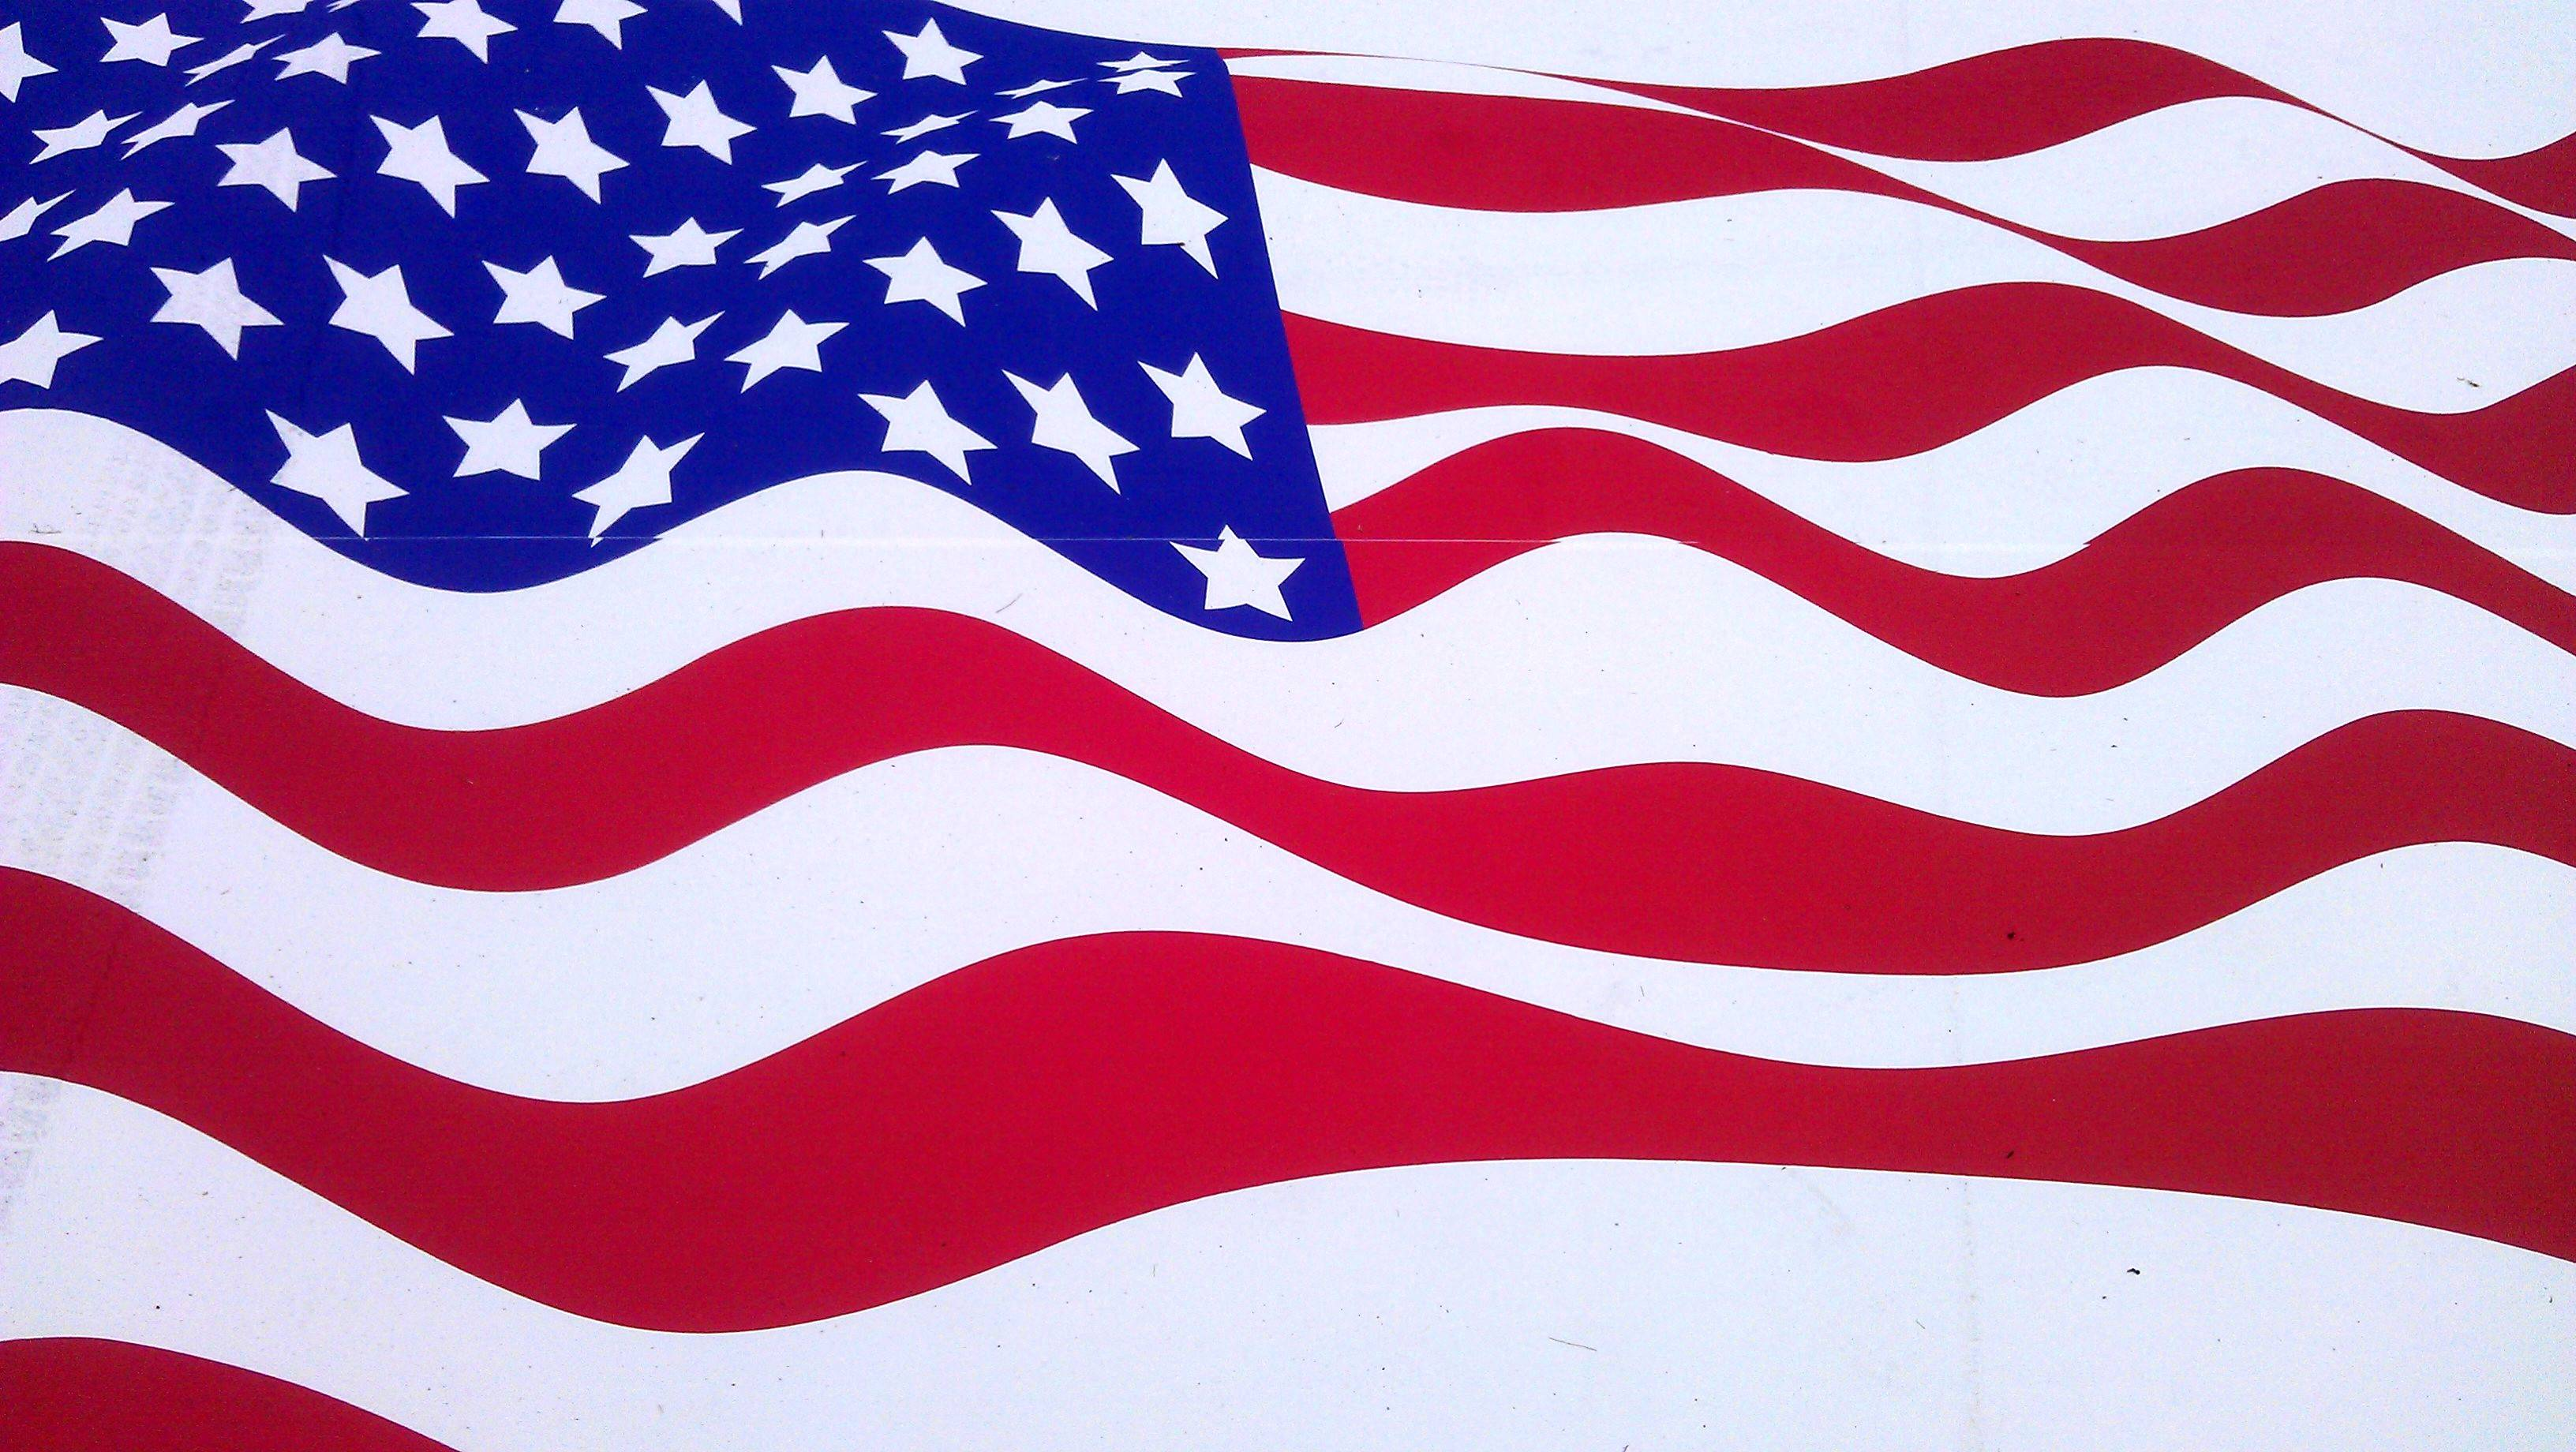 High Resolution Flag: American Flag Background Images